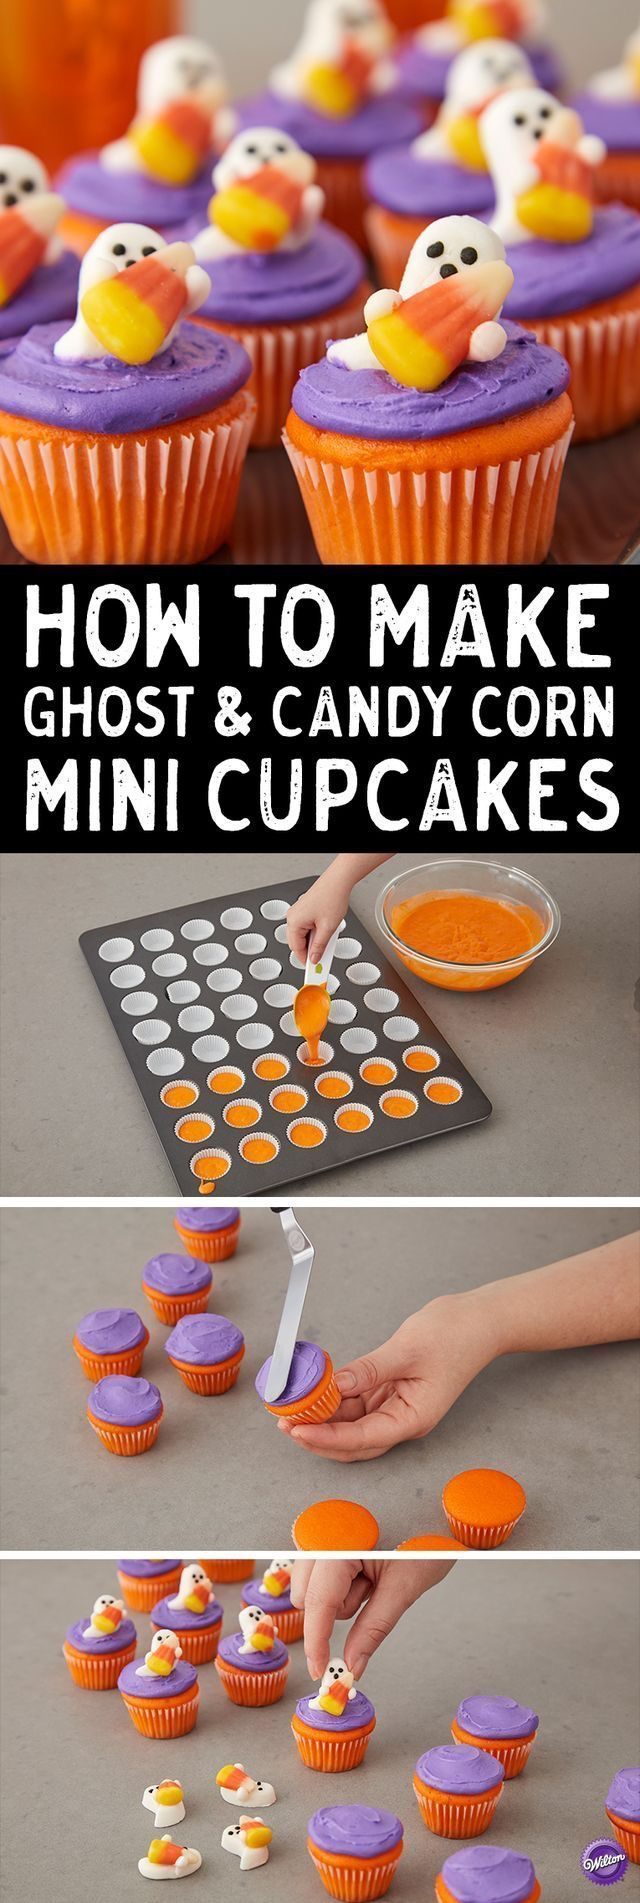 Ghost and Candy Corn Mini Cupcakes